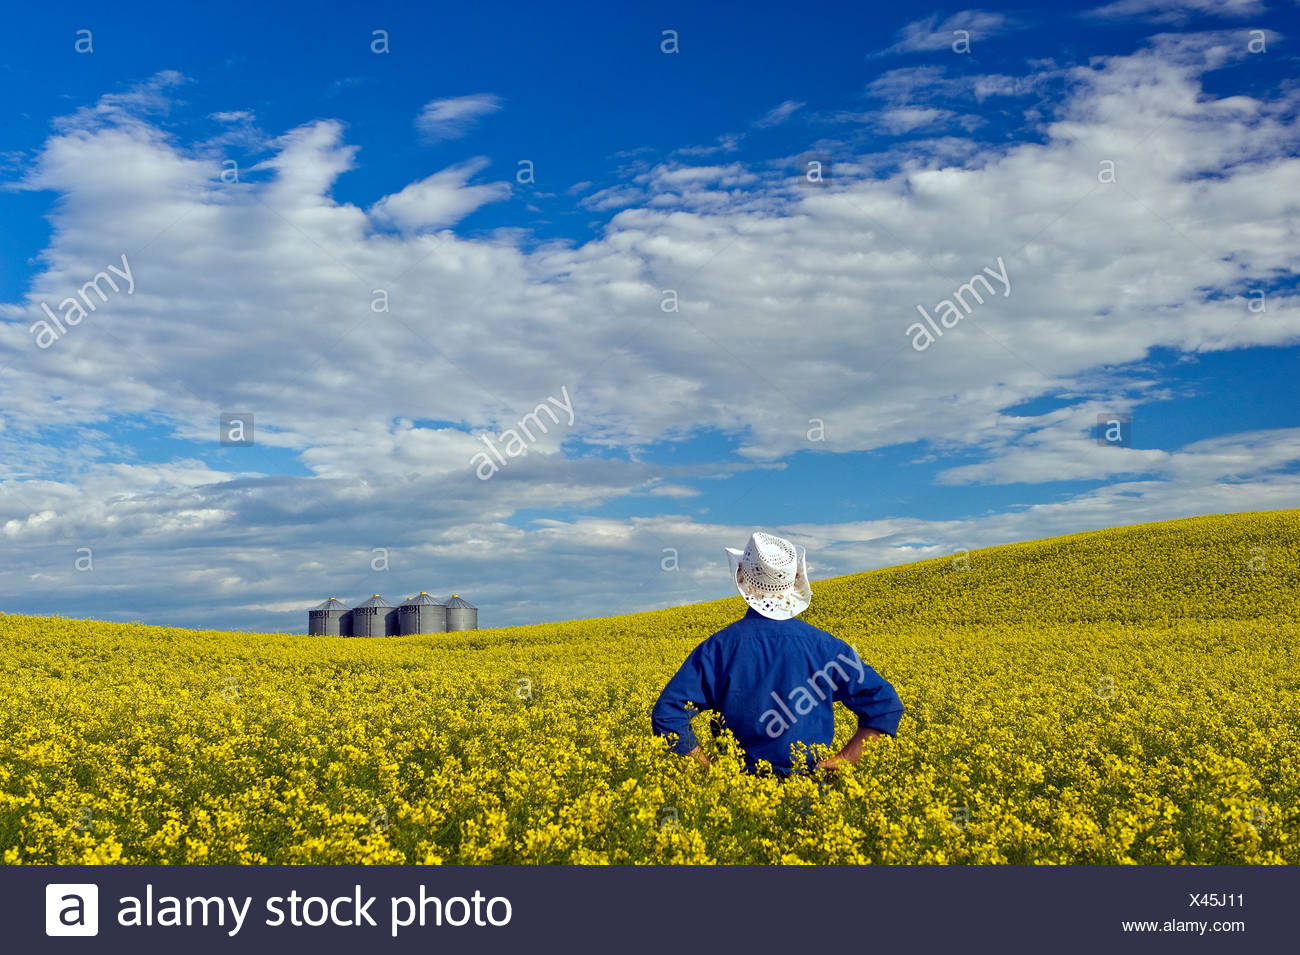 a man looks out over a field of bloom stage canola with grain bins in the background, Tiger Hills, Manitoba, Canada - Stock Image